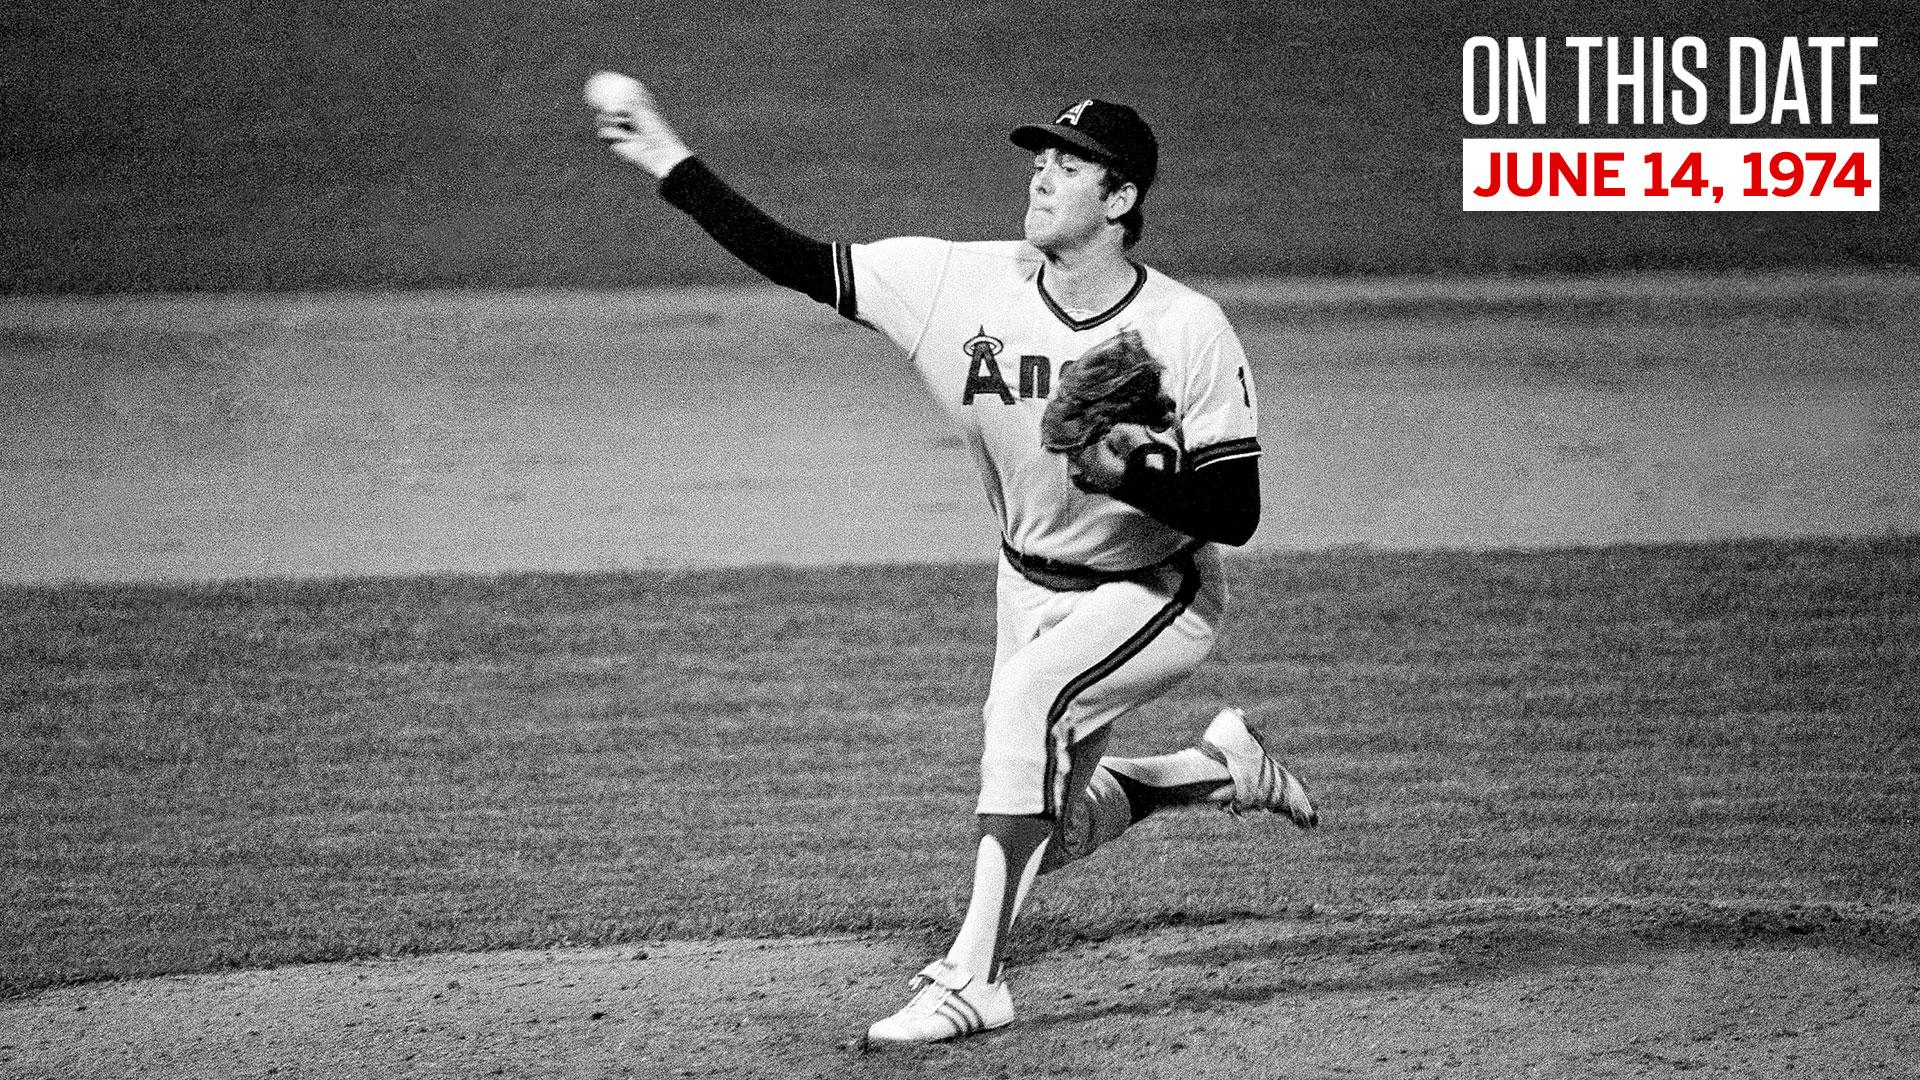 On This Date: Nolan Ryan pitched 13 innings, threw 235 (!) pitches and struck out 19.  The result? A no-decision 😧 https://t.co/gytHr7F6EI